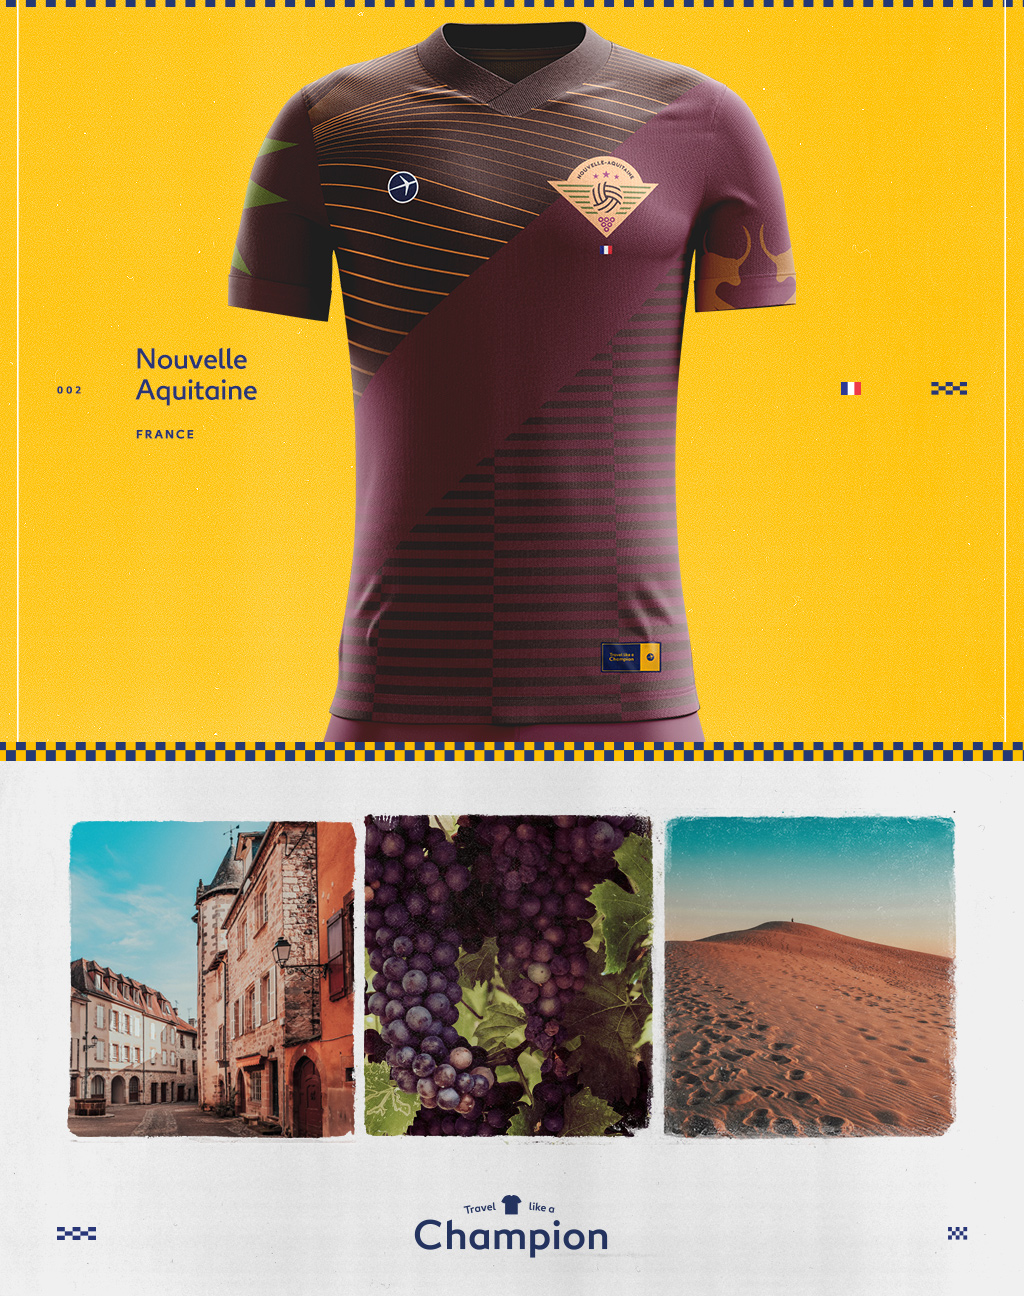 pictures of nouvelle aiquitaine and the soccer jersey they inspired